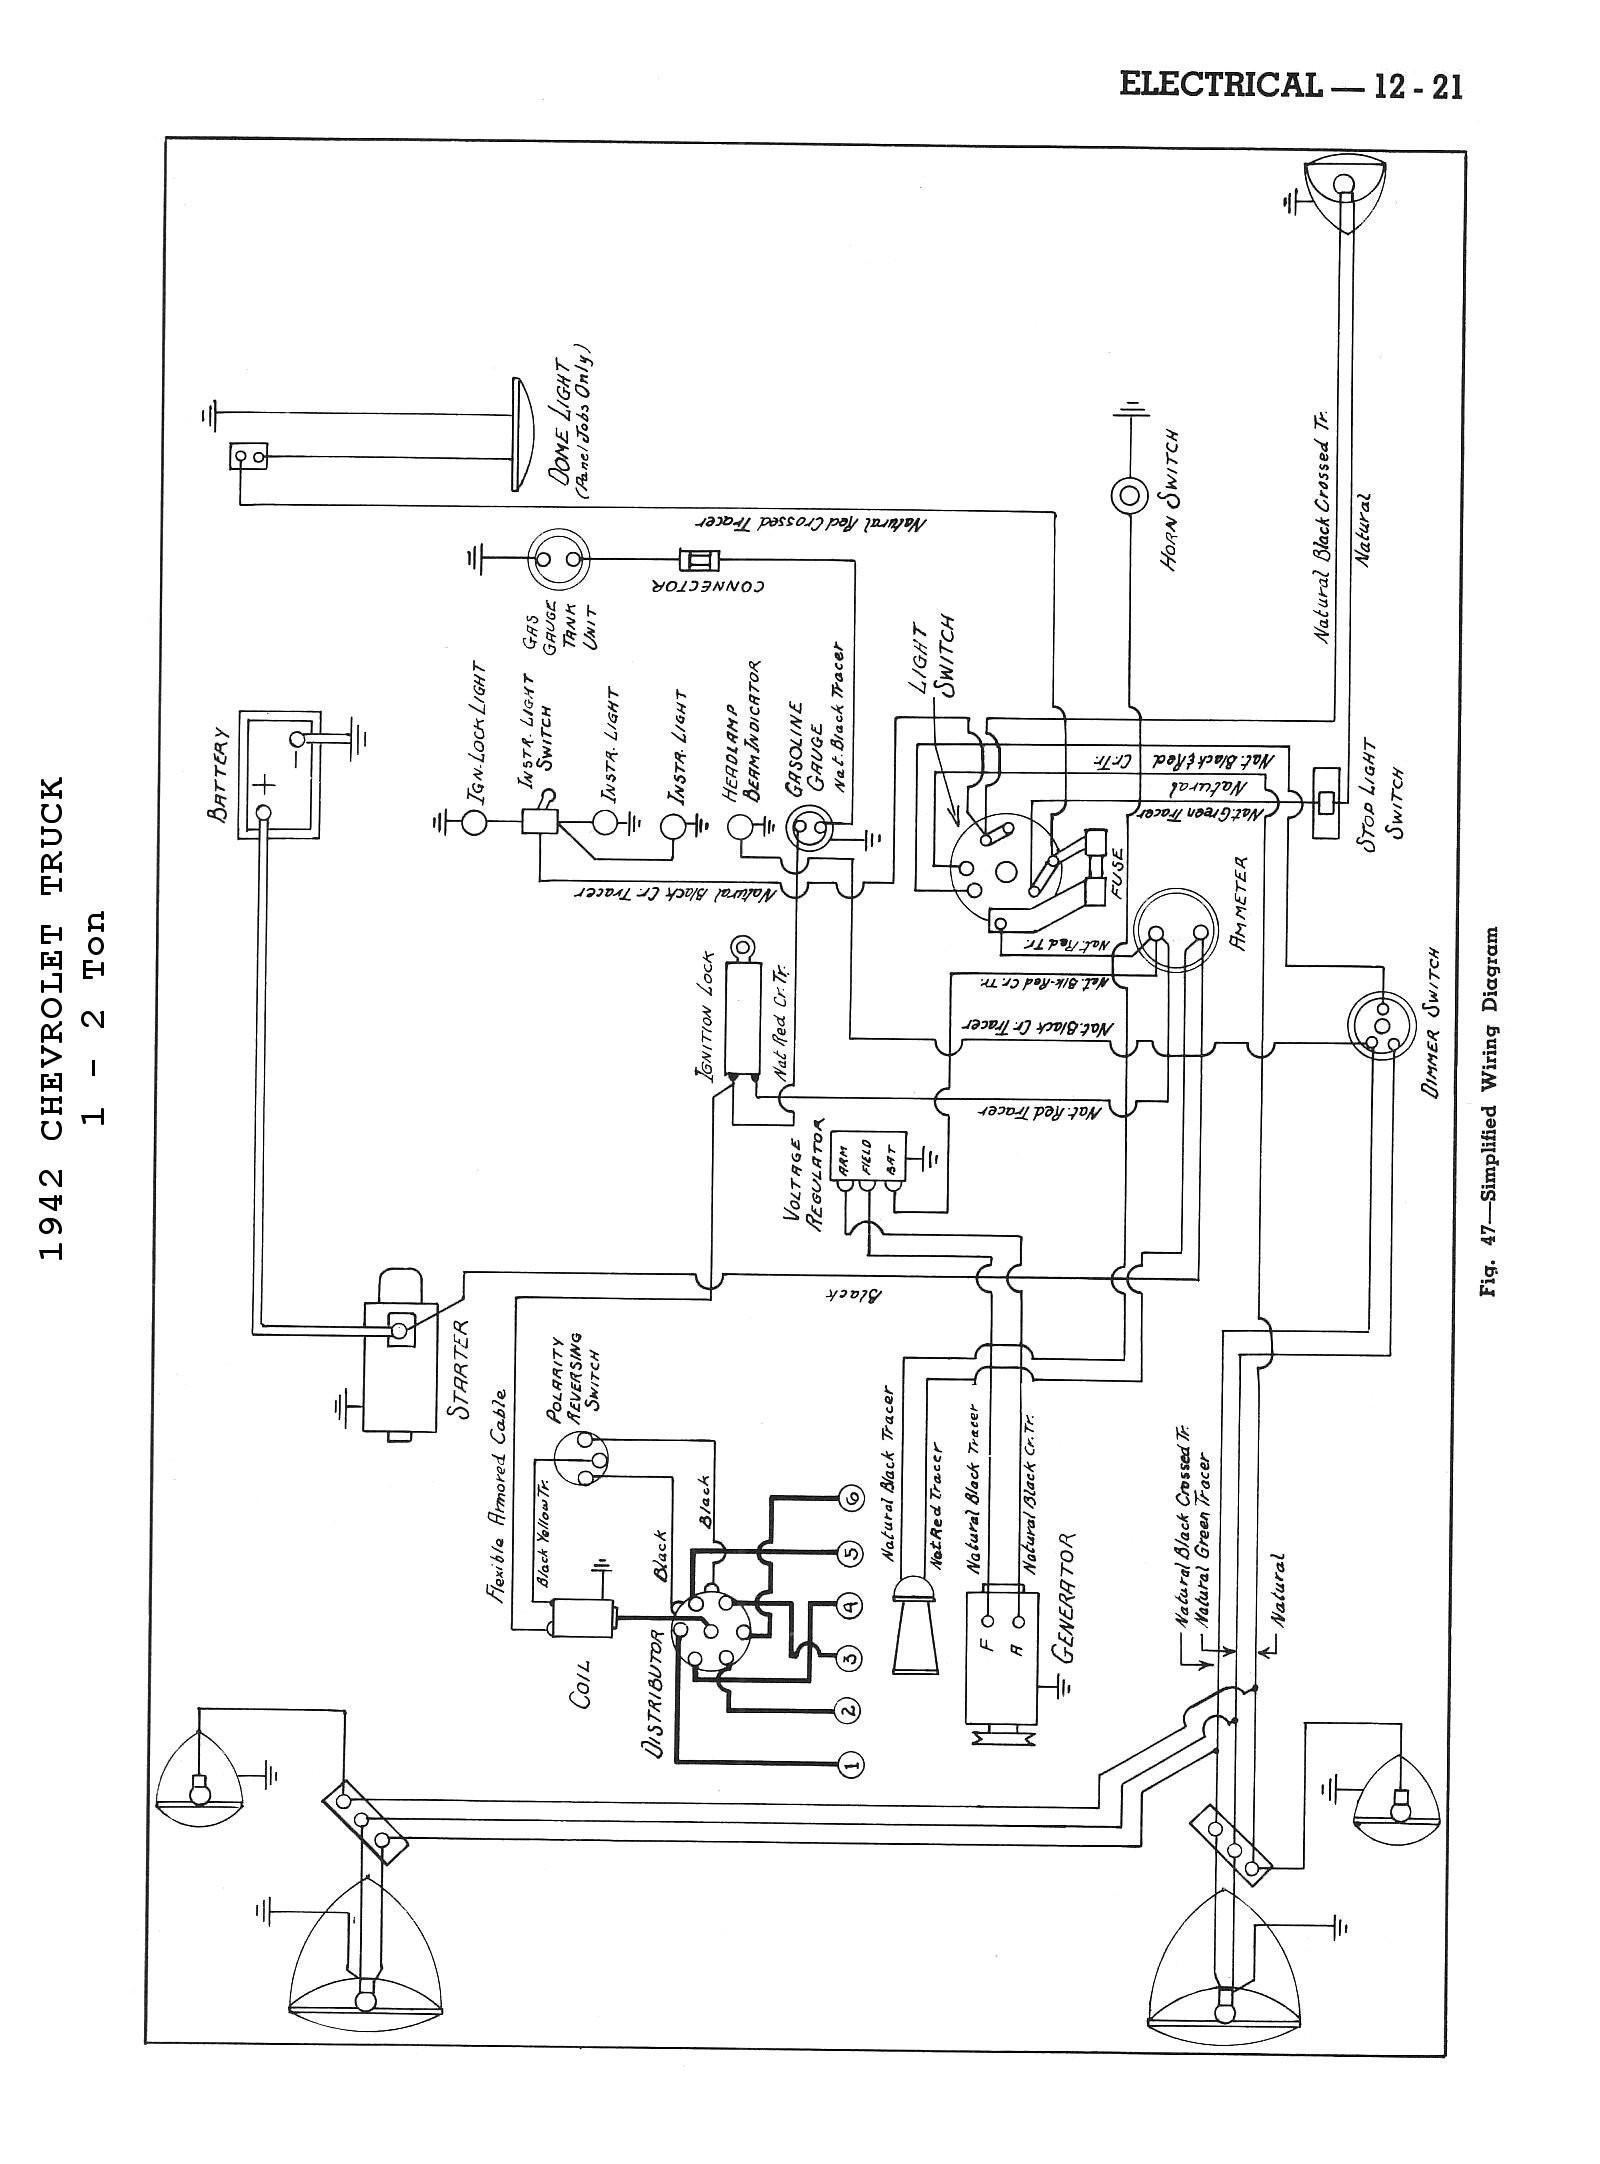 Alternator Wiring Diagram Inspirational